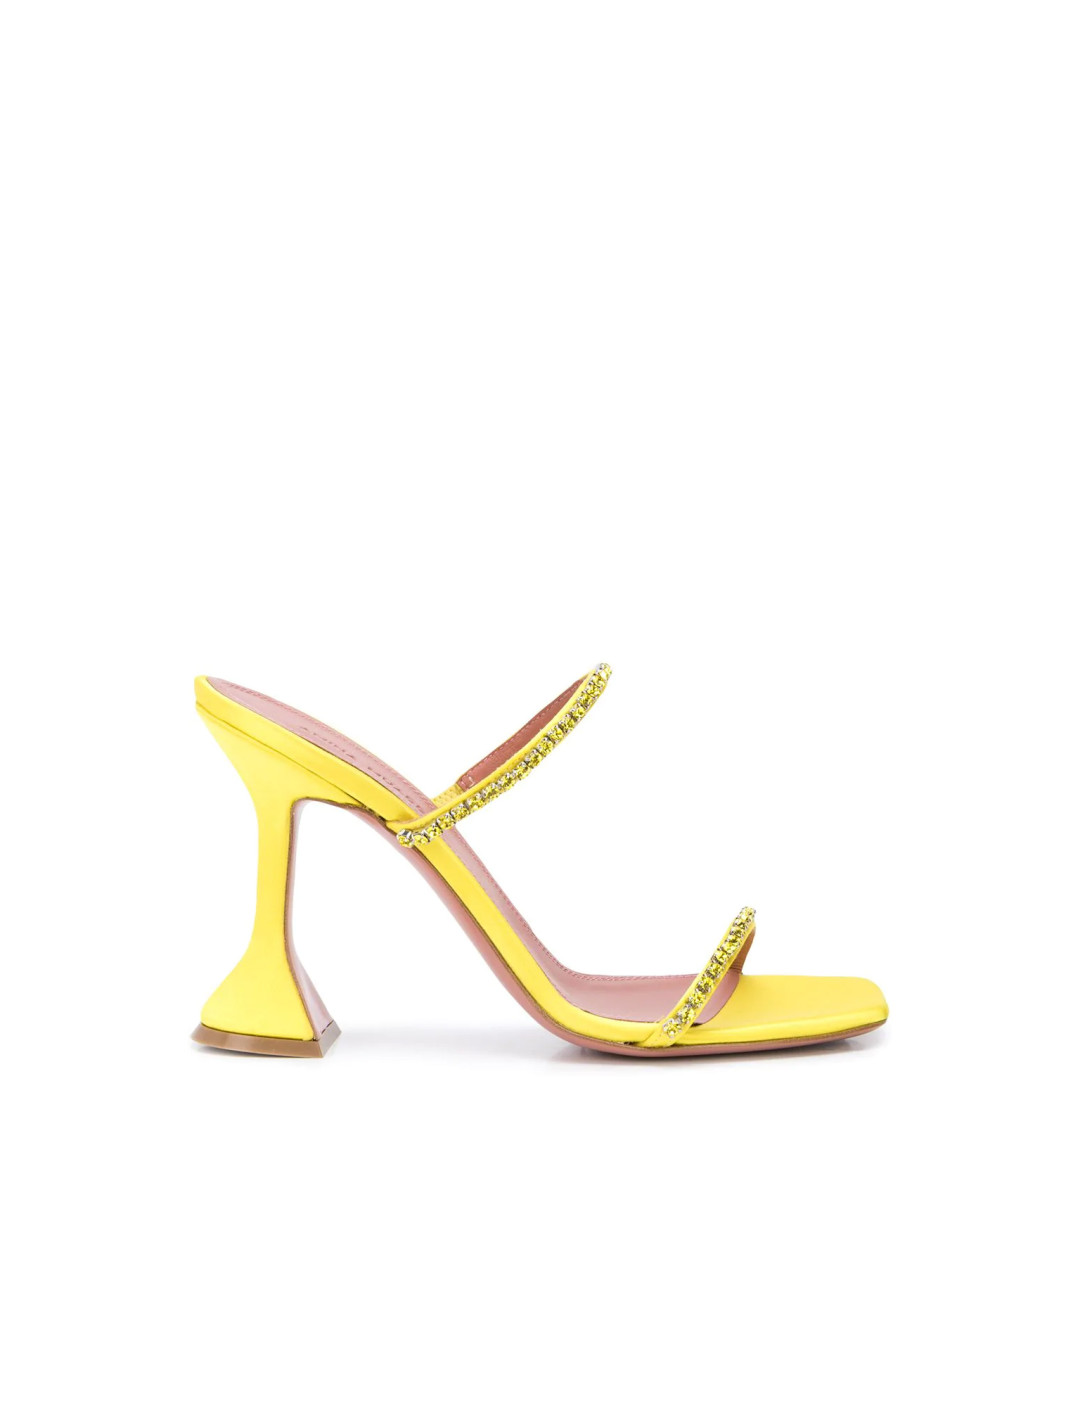 Gilda Open Toe Sandals